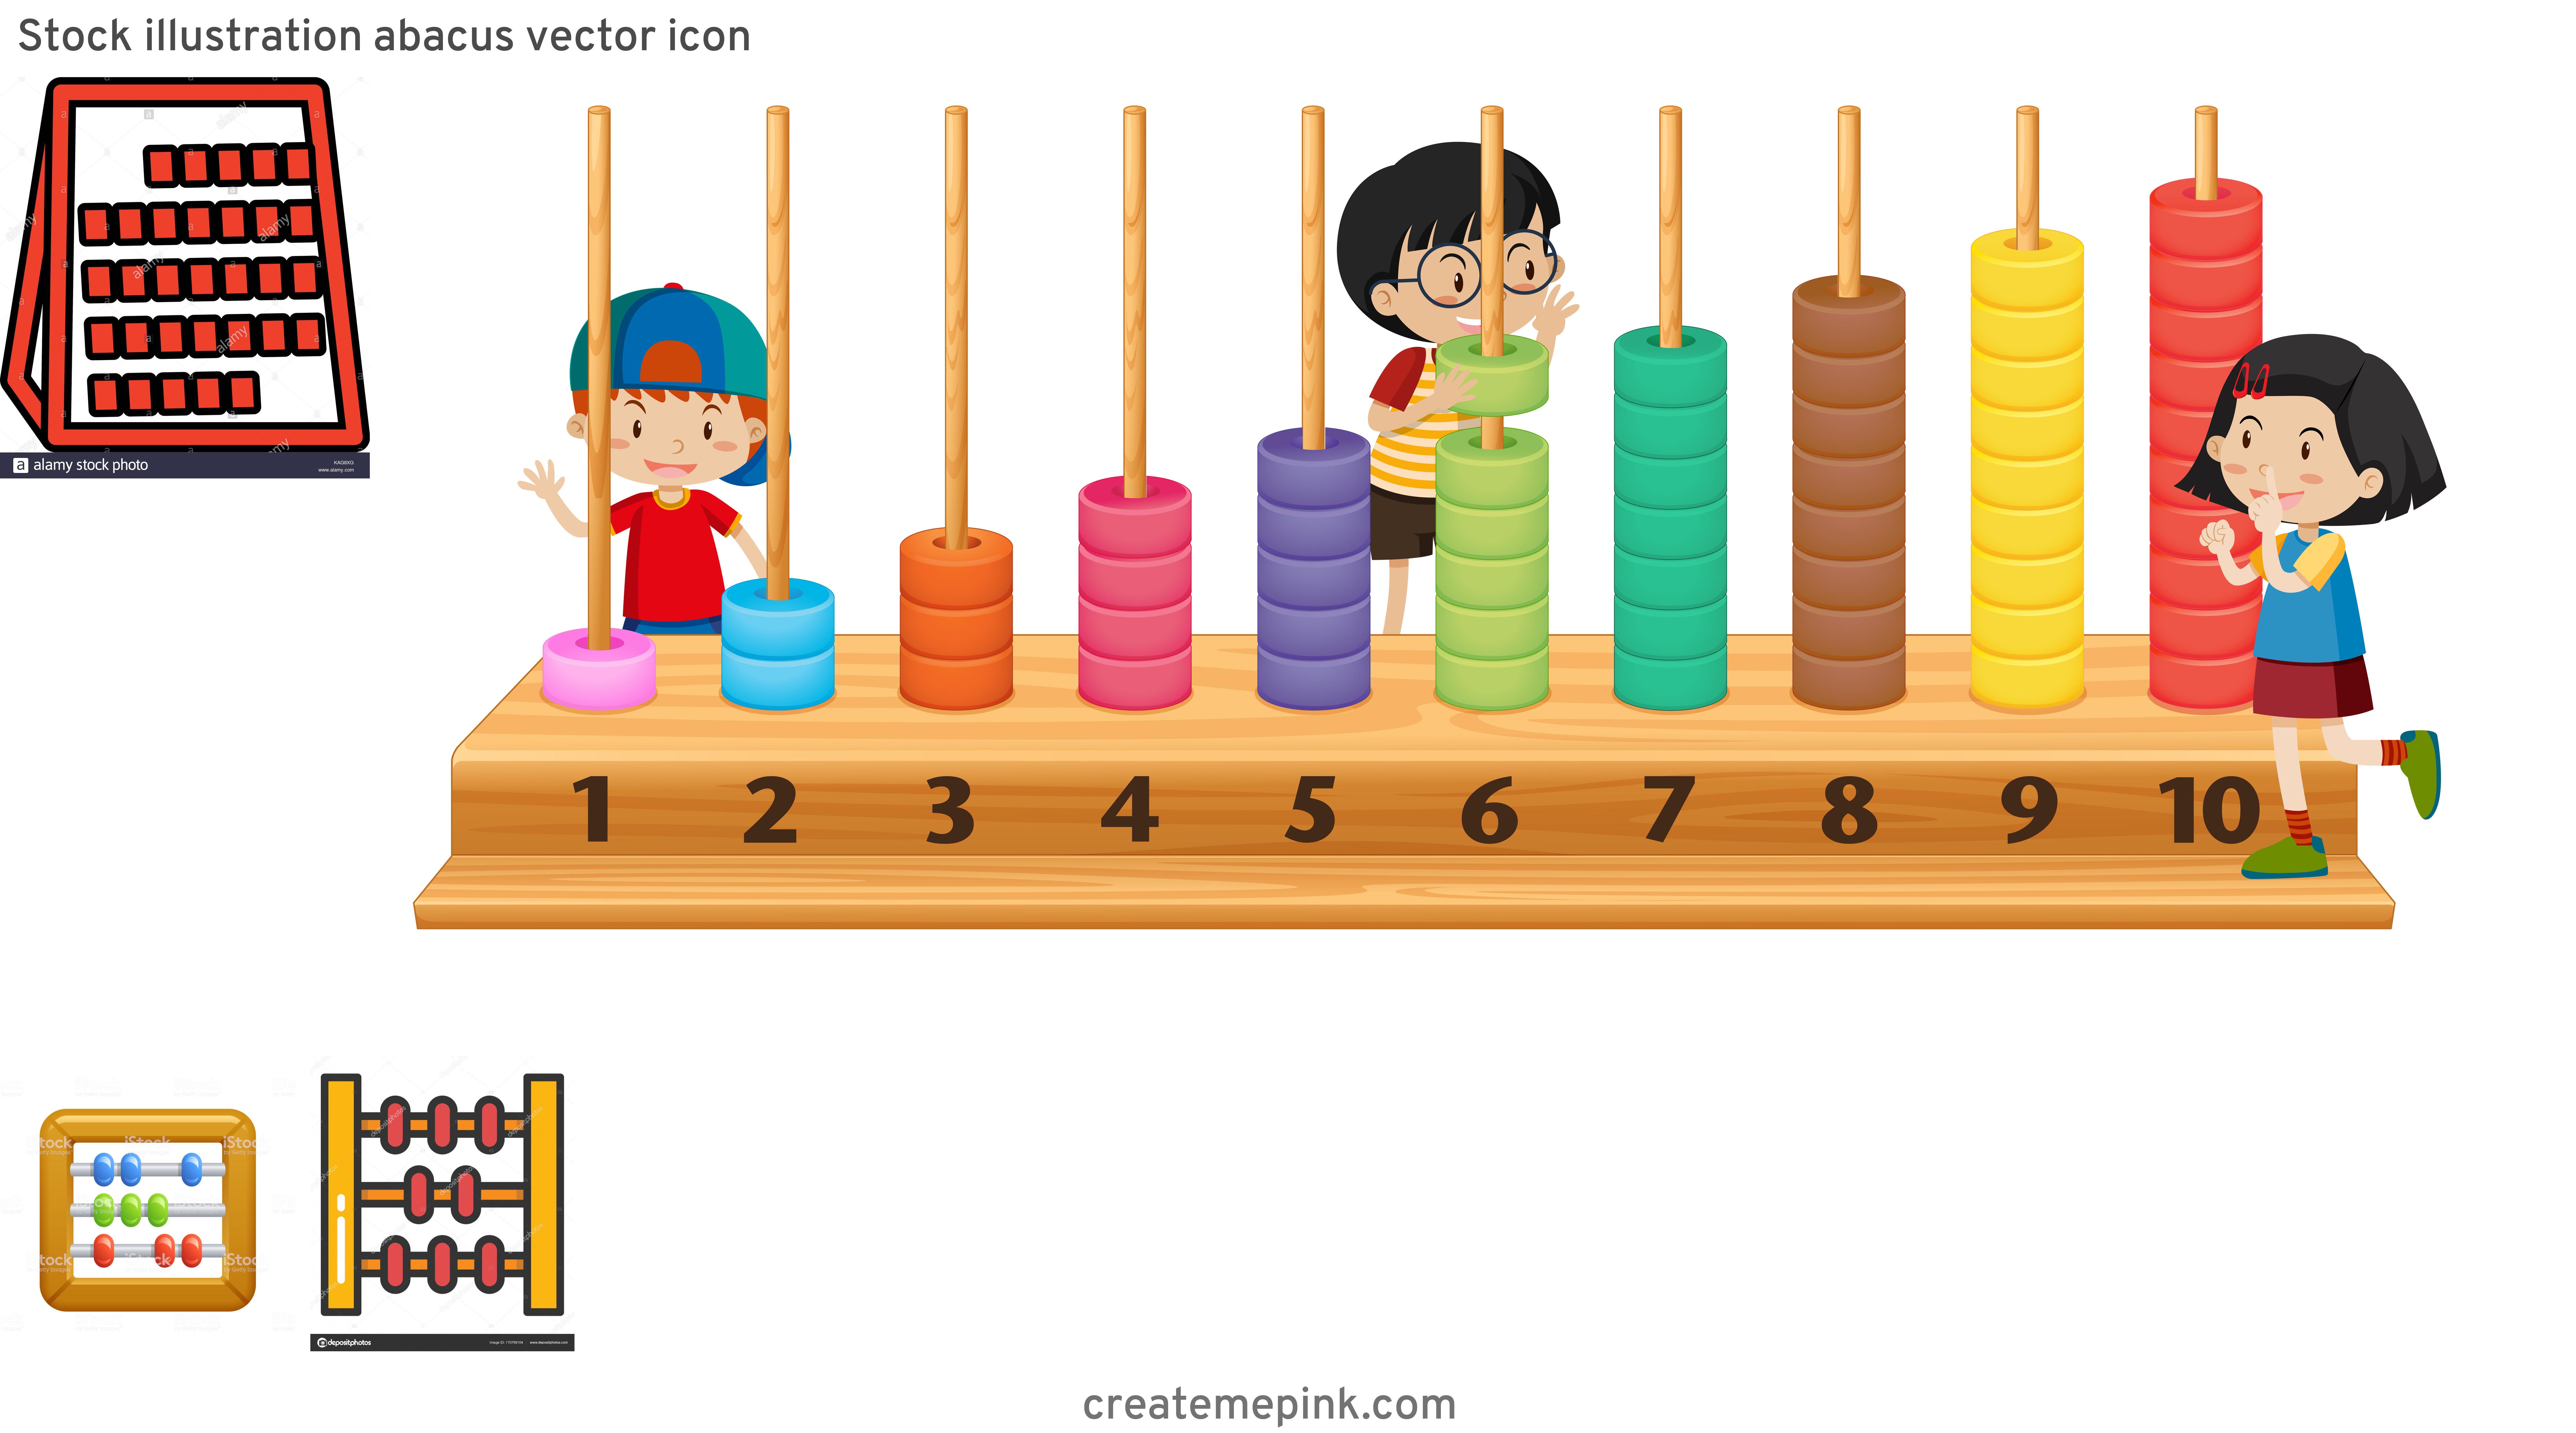 Abacus Vector Art: Stock Illustration Abacus Vector Icon